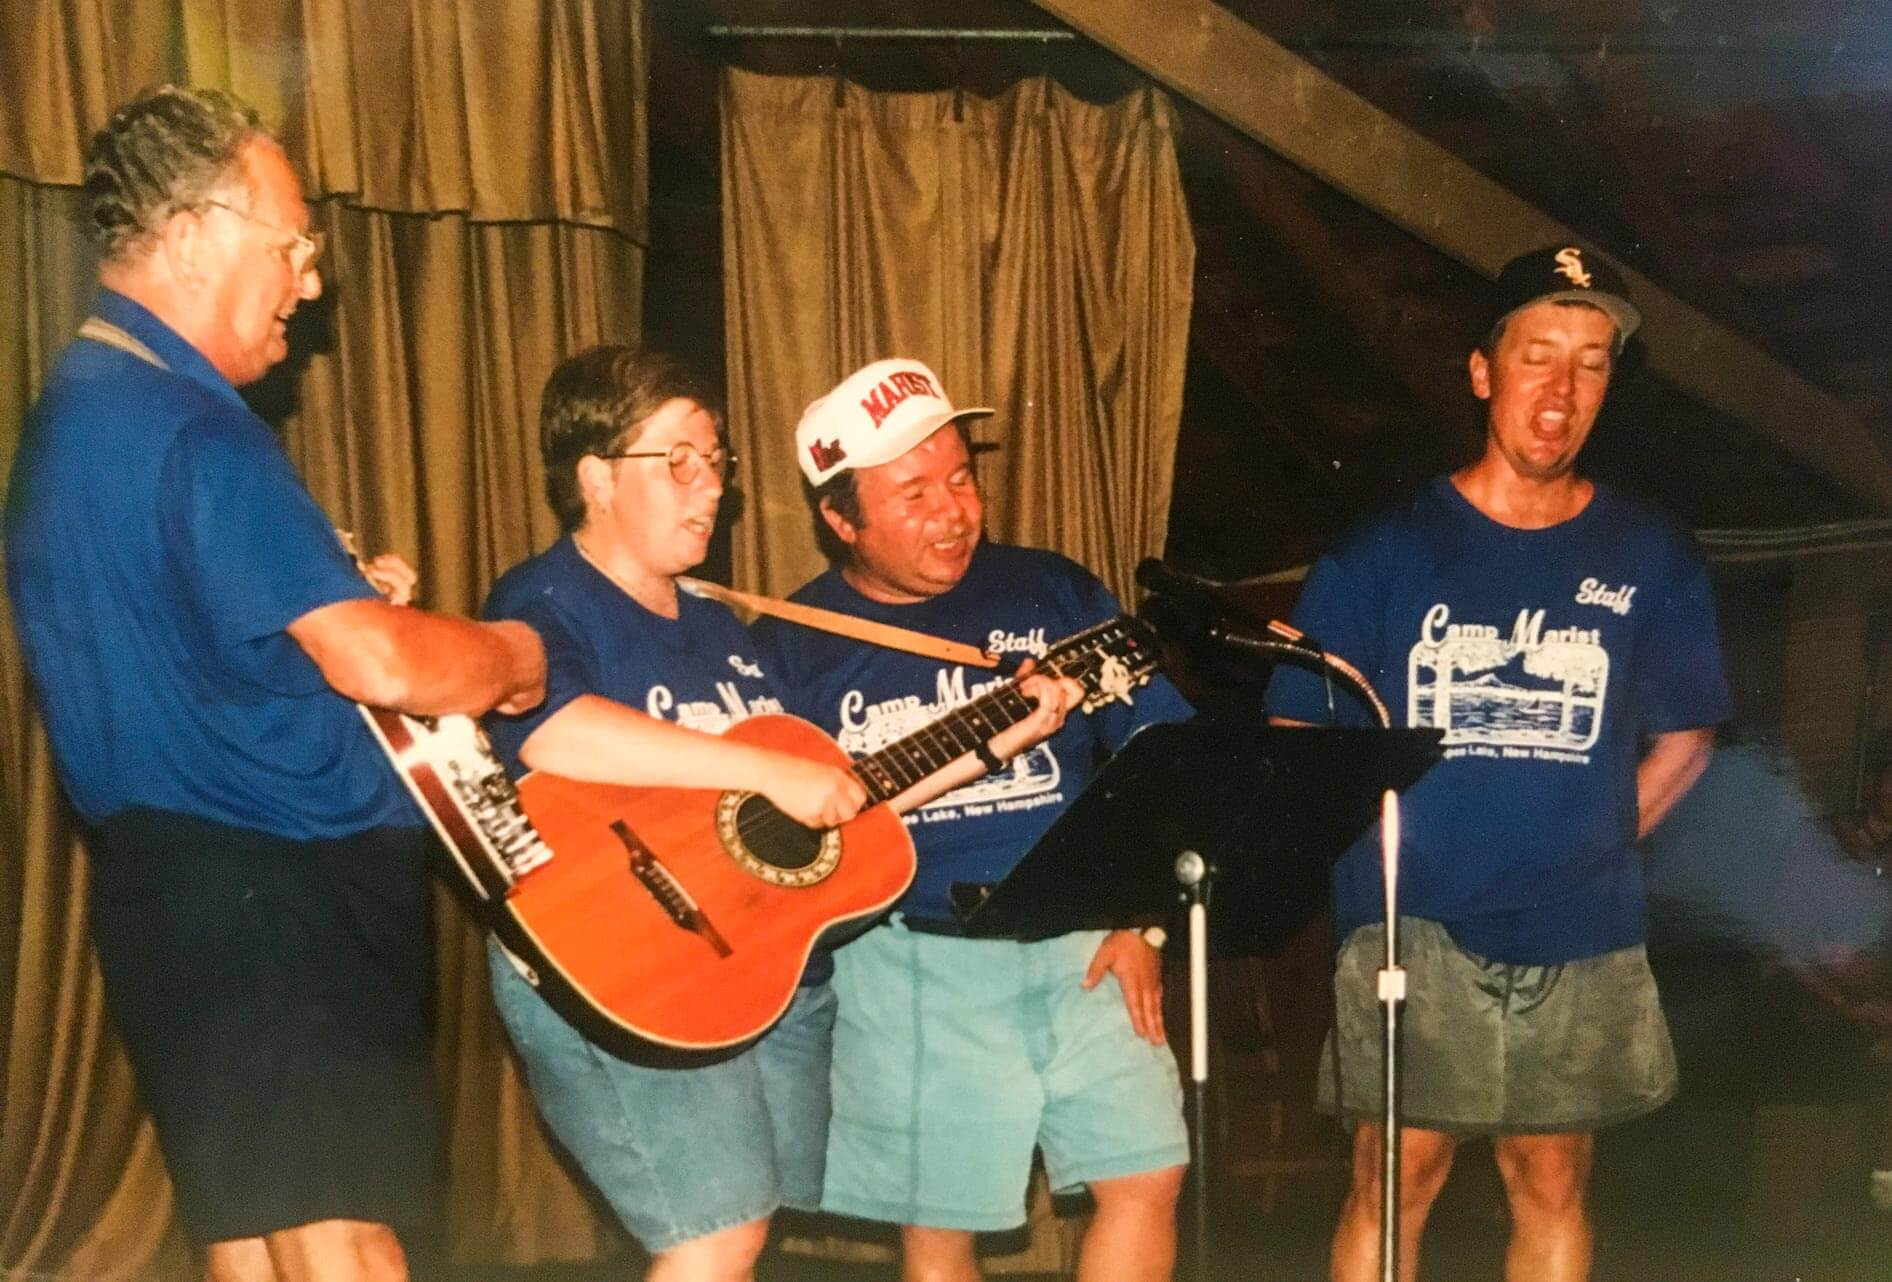 Camp Marist throwback photo of musical performance